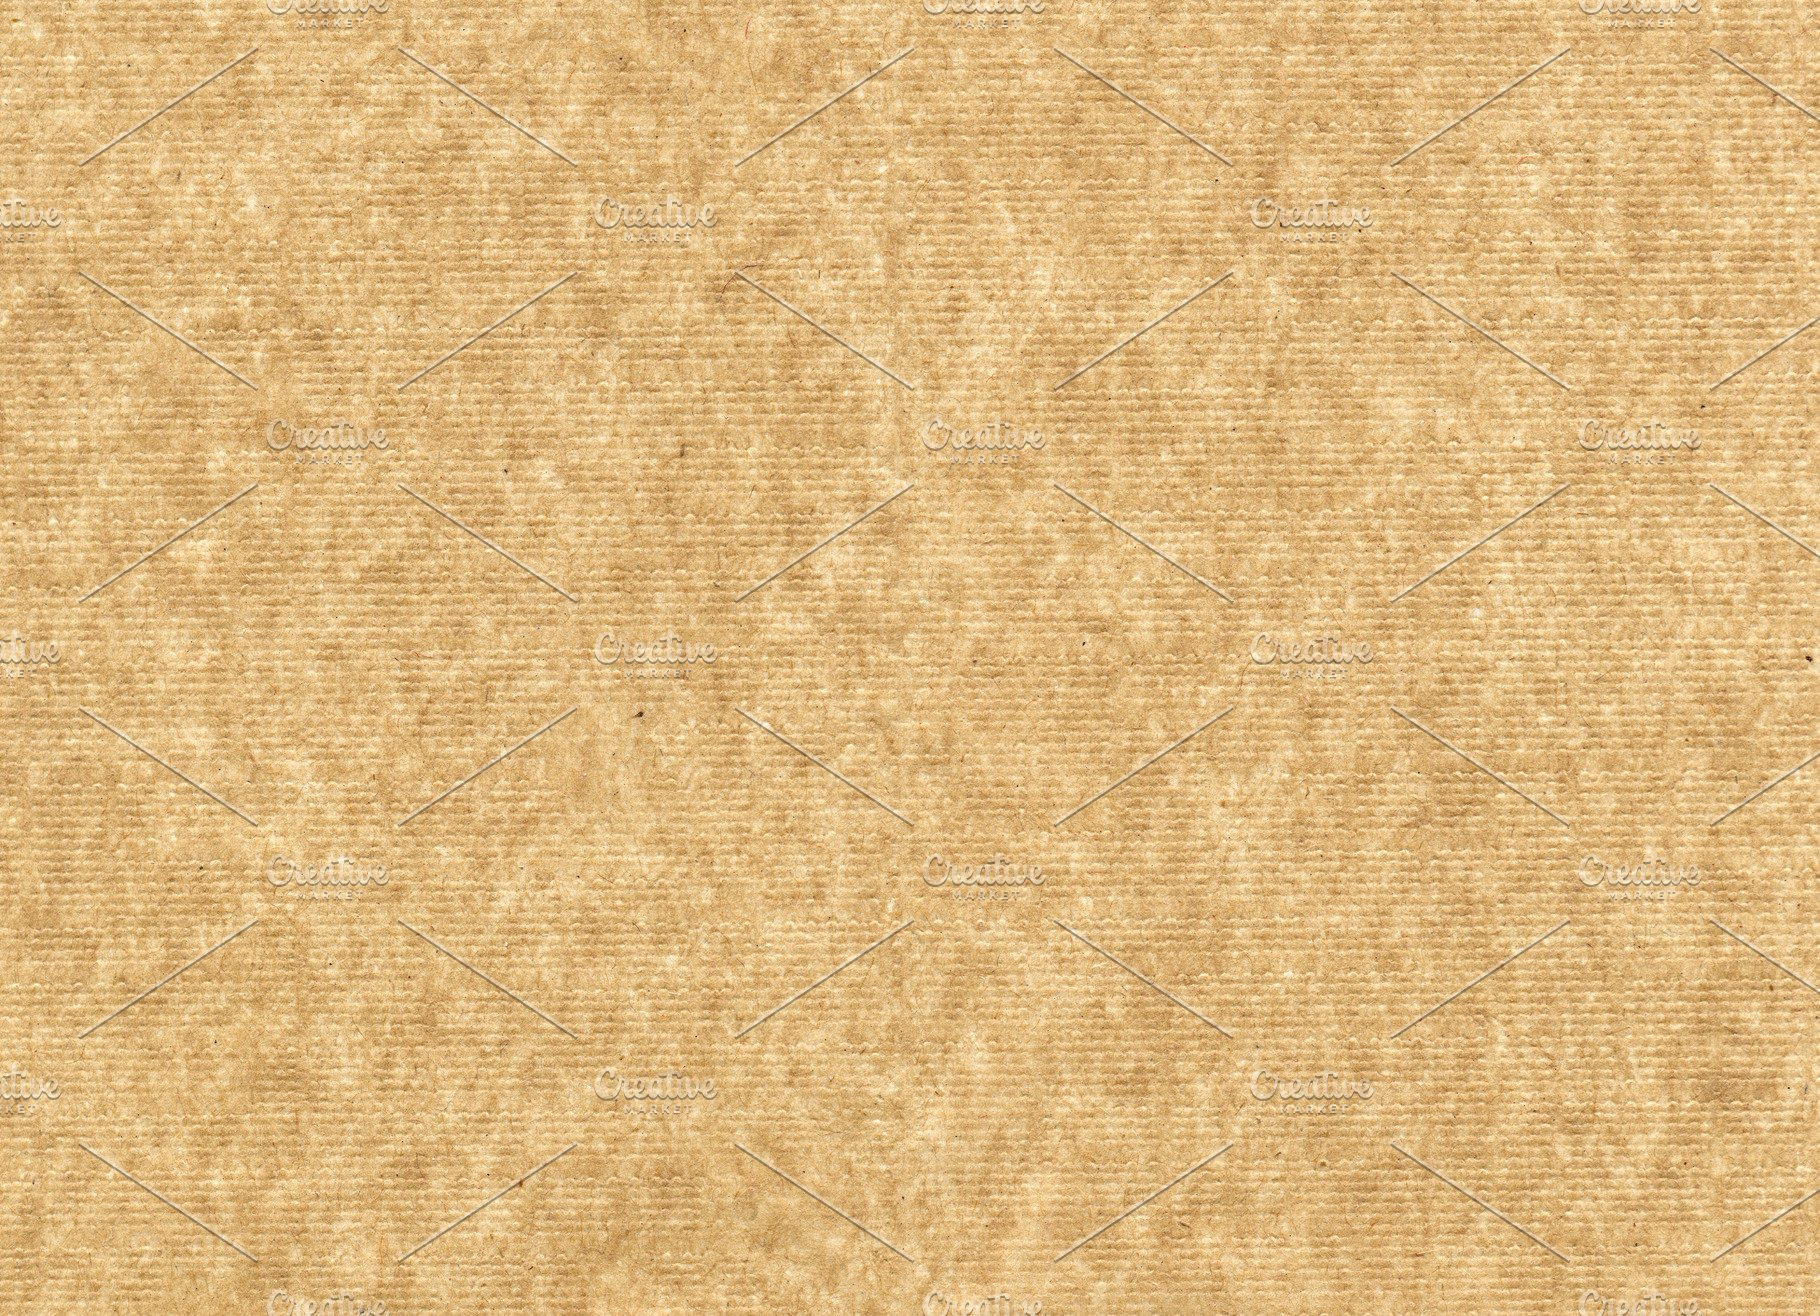 brown paper texture background | High-Quality Stock Photos ...